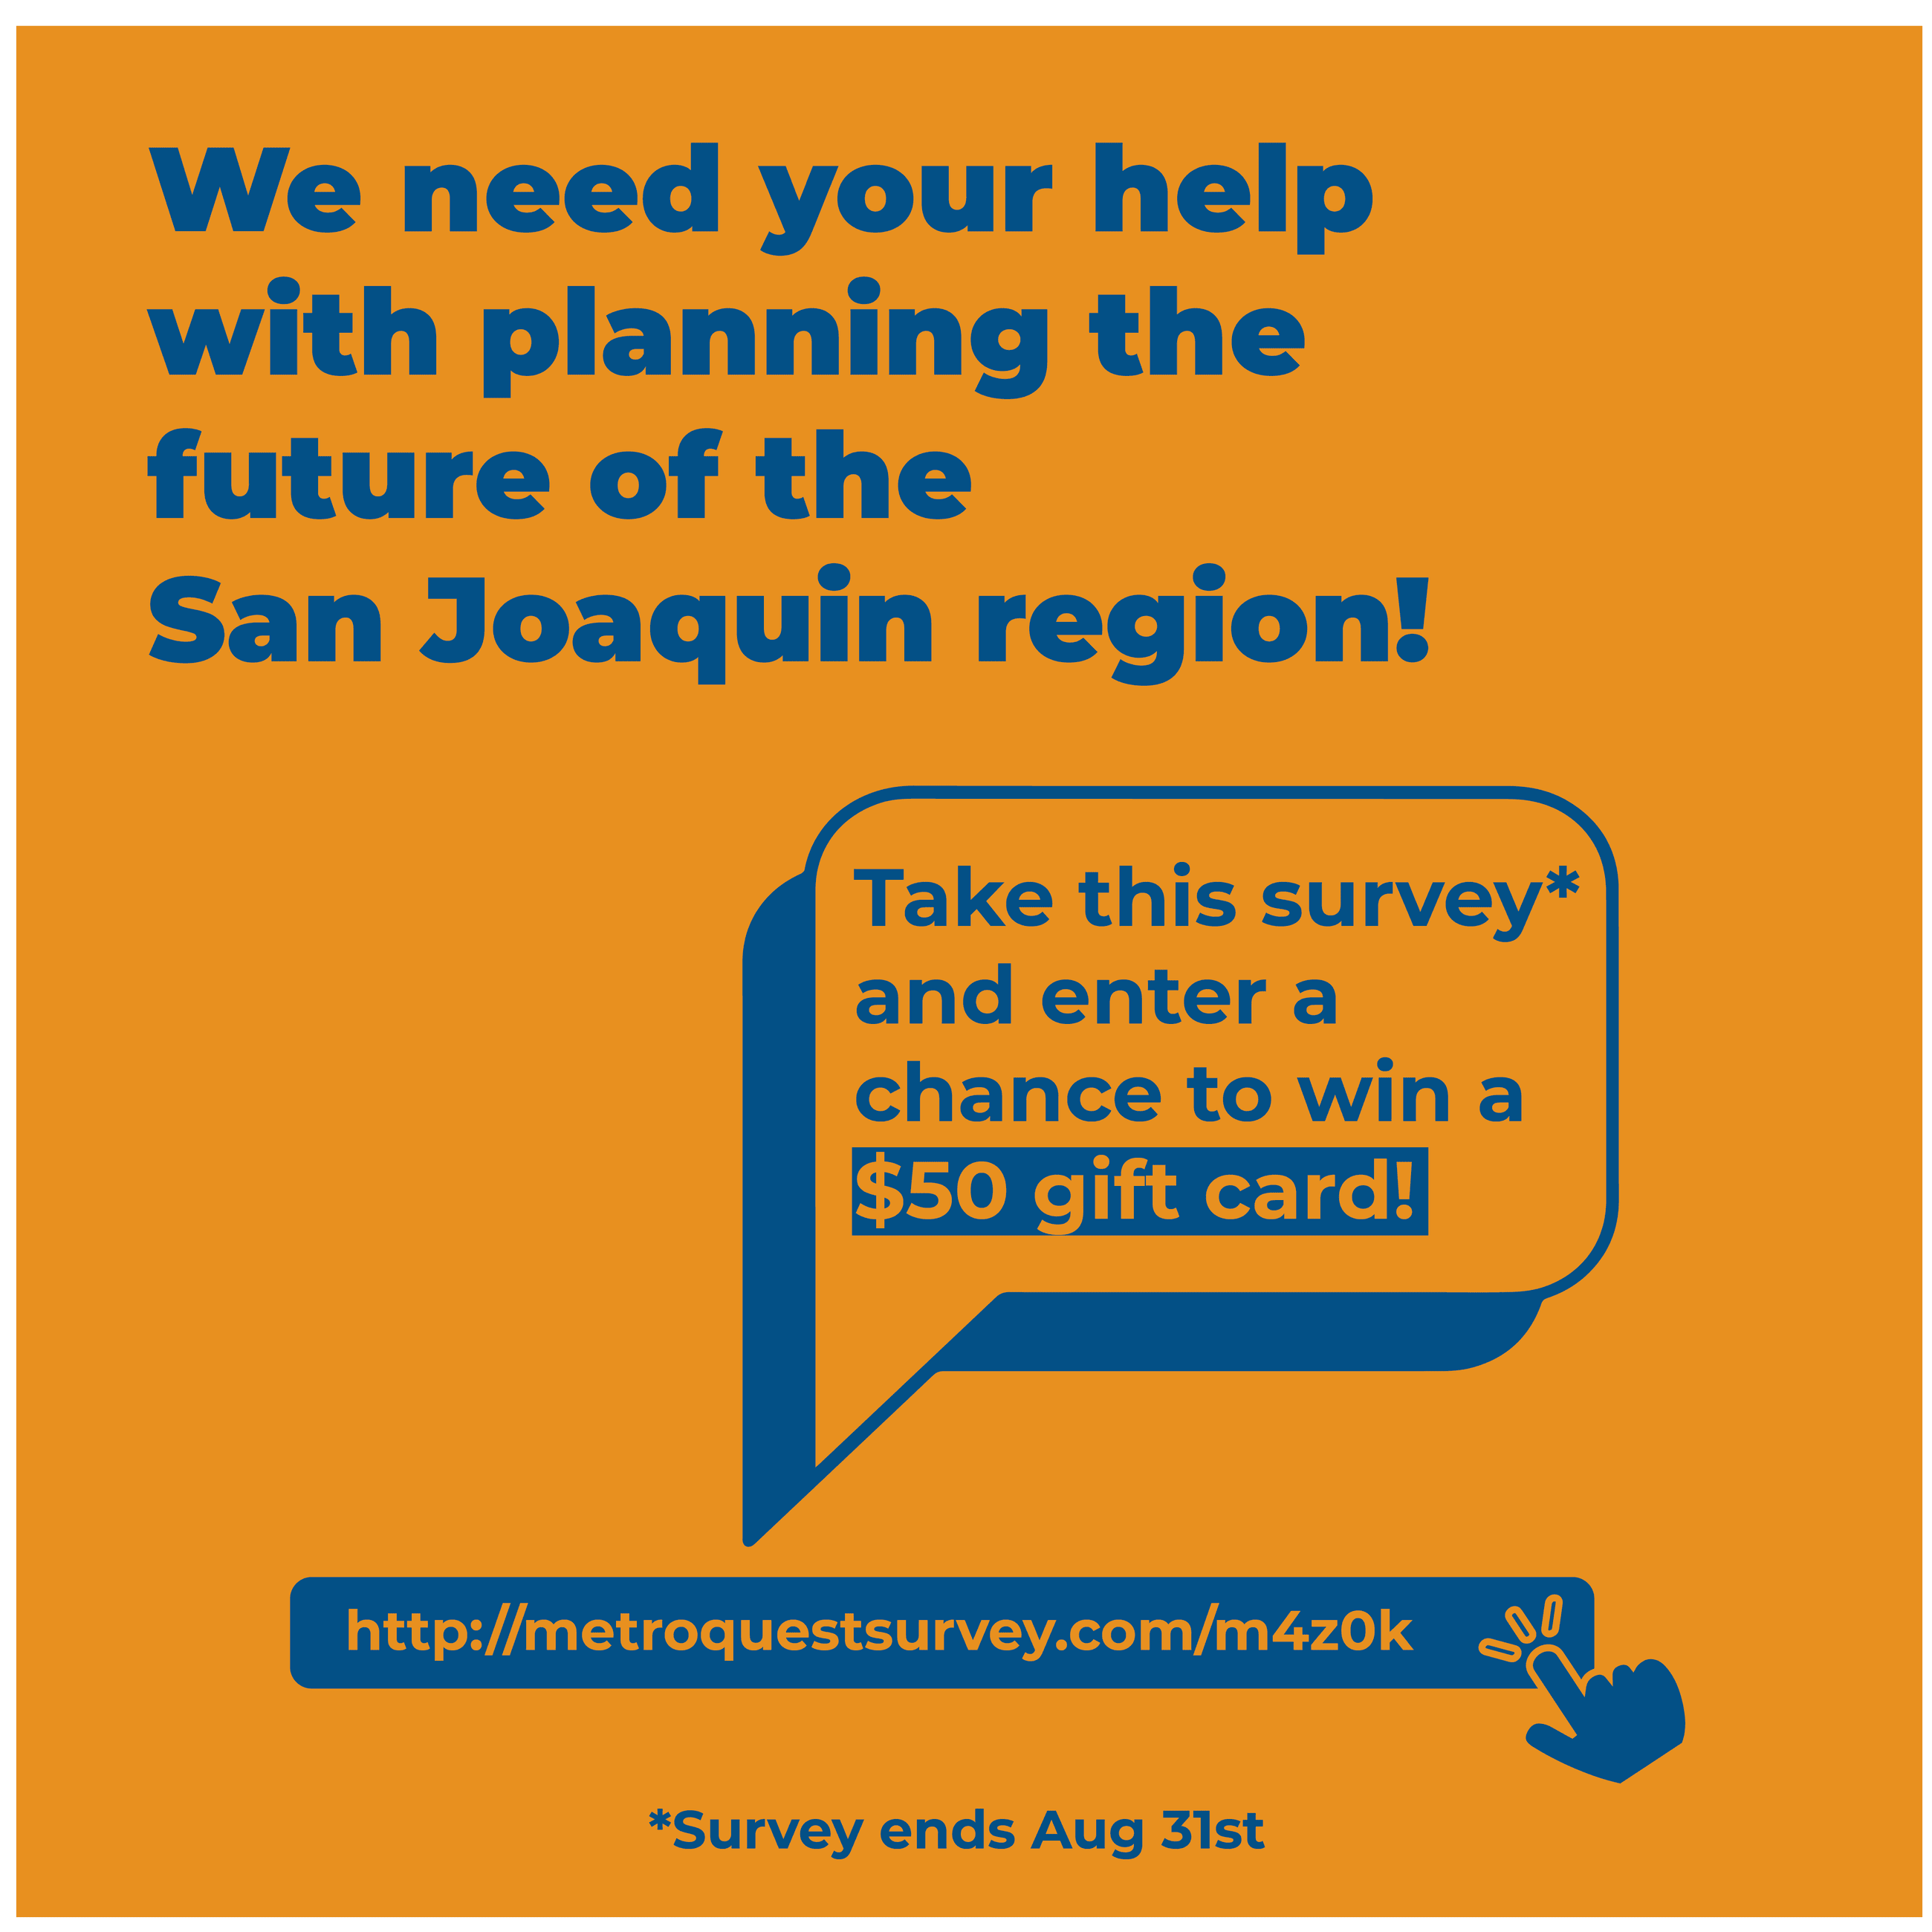 Plan for the future of San Joaquin!